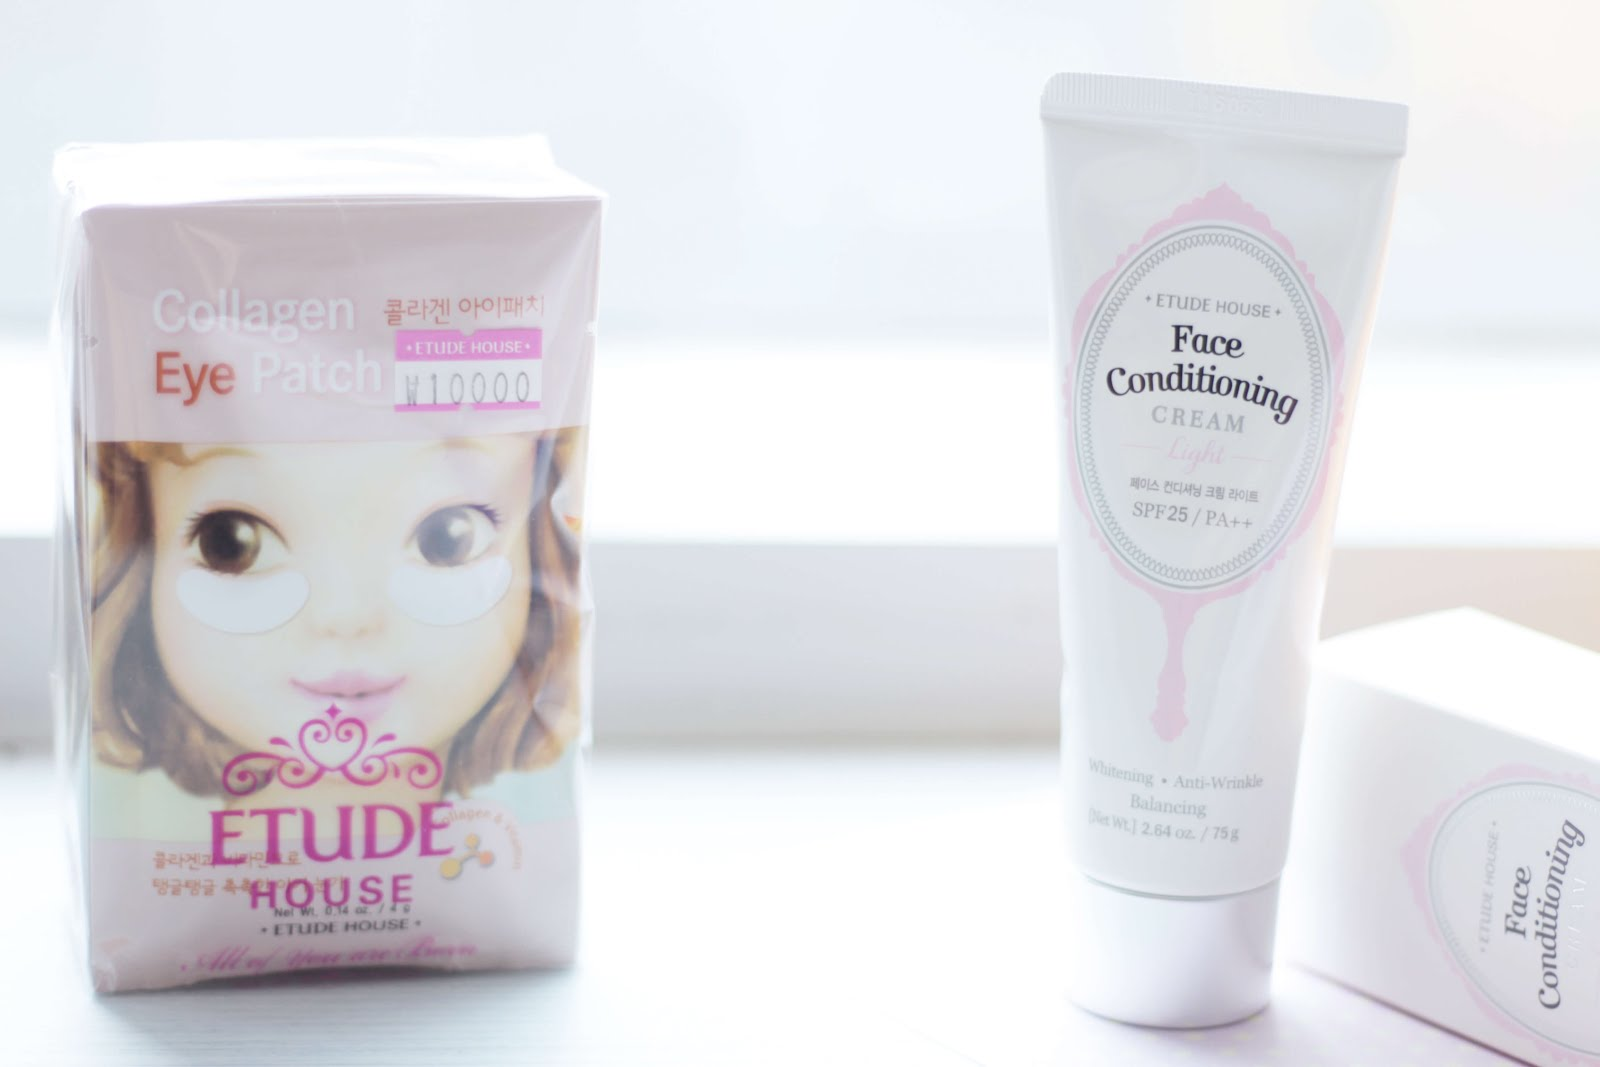 korean beauty haul etude house collagen eye patch skin conditioning cream